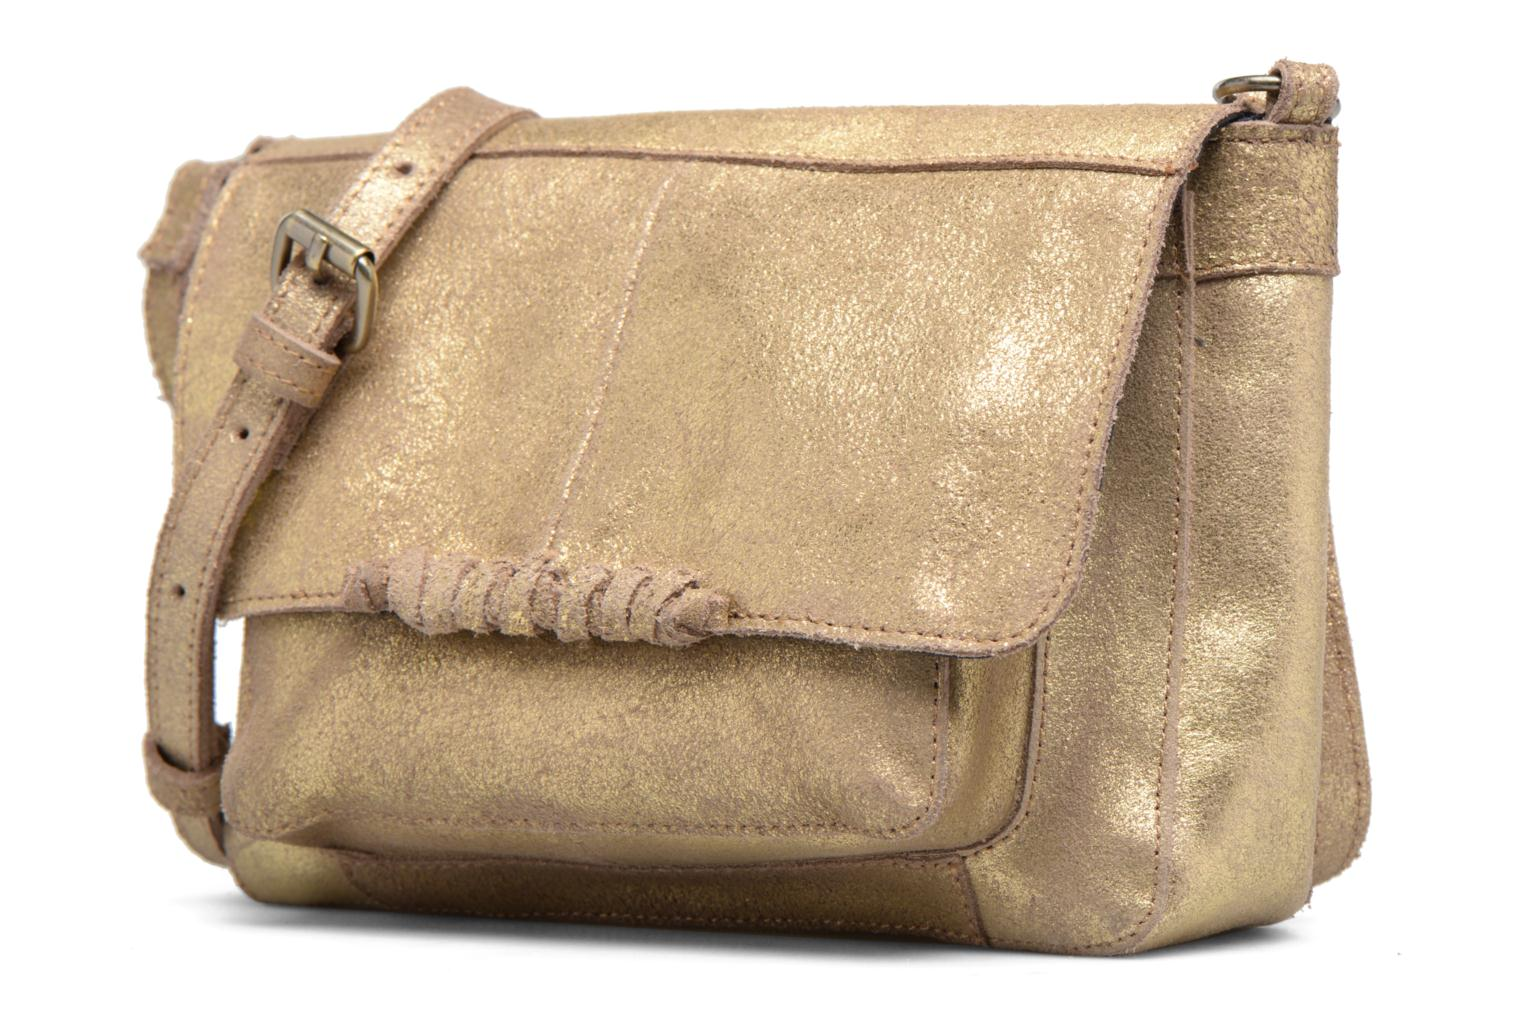 Handtassen Pieces Musta Leather Crossover bag Goud en brons model